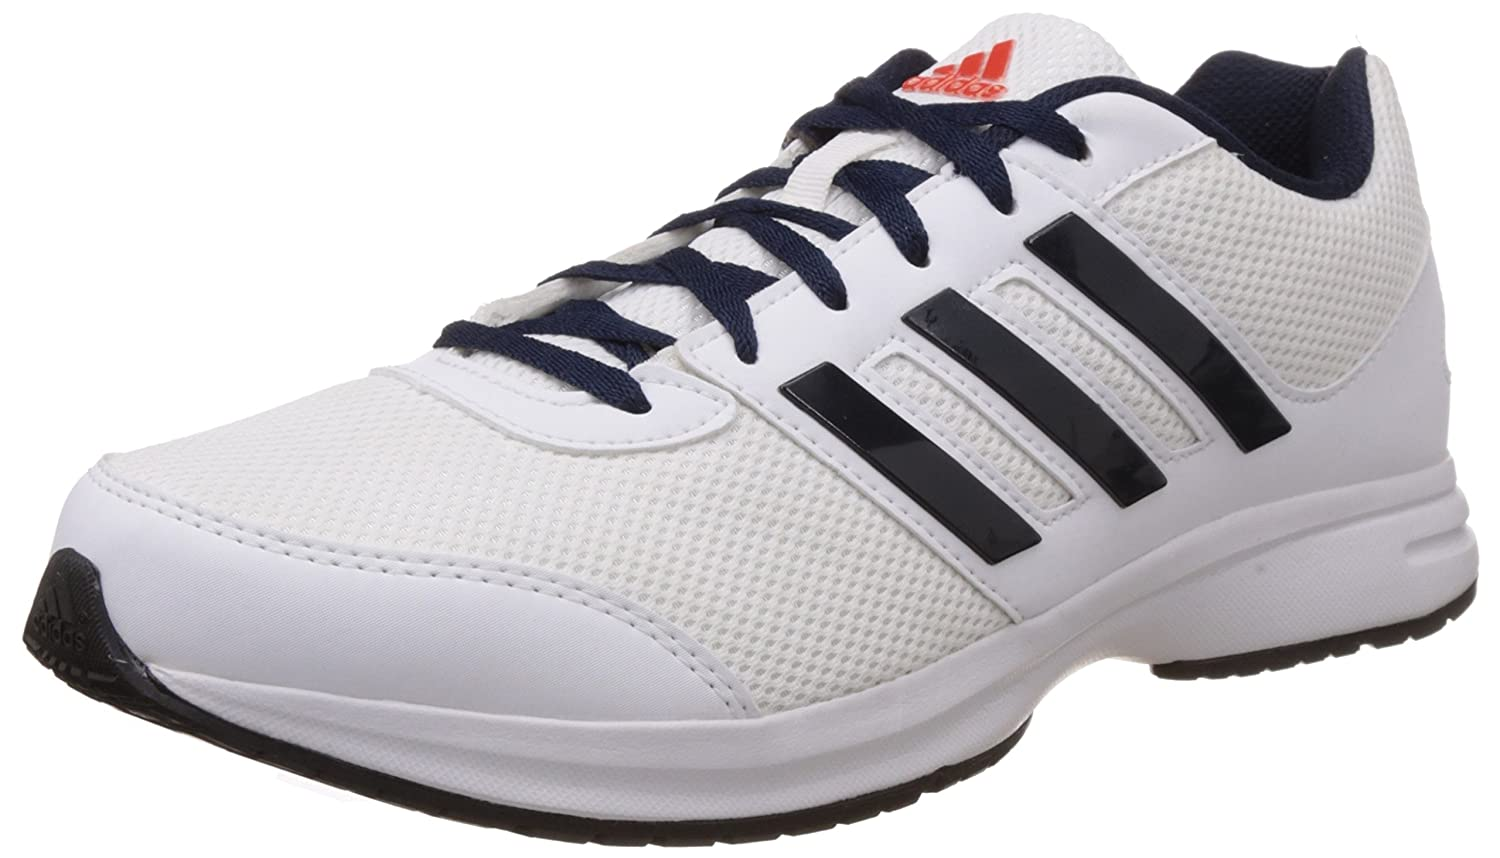 adidas Men's Ezar 2.0 M Mesh Running Shoes: Buy Online at Low Prices in  India - Amazon.in